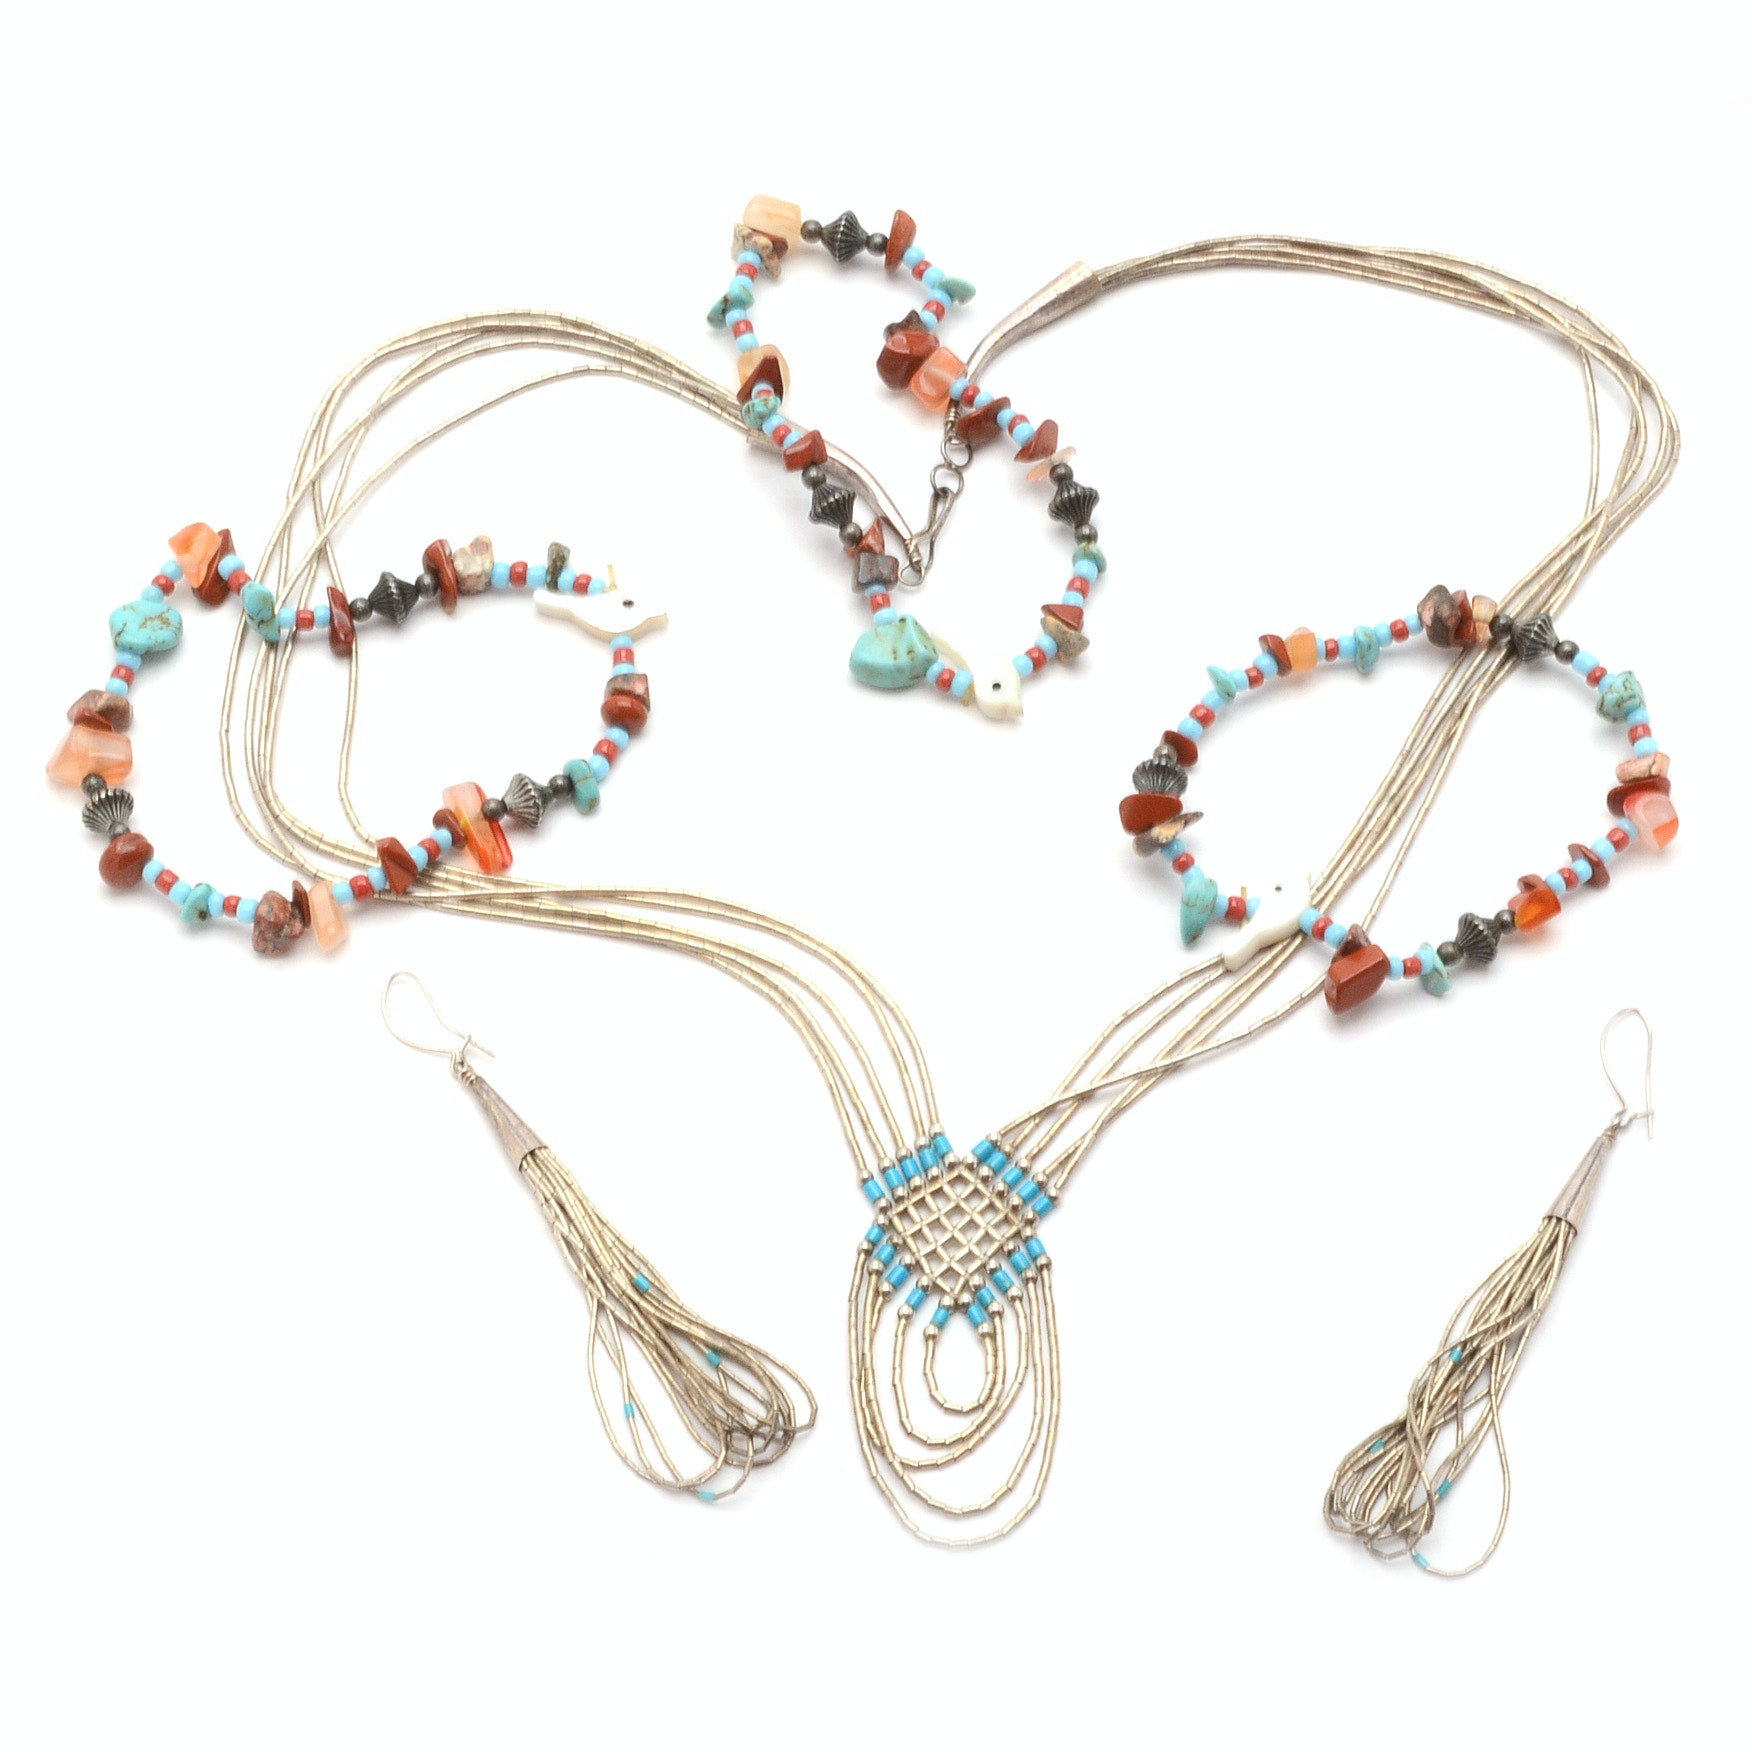 Group of Southwestern Sterling Jewelry and Multi-Stone Bracelets